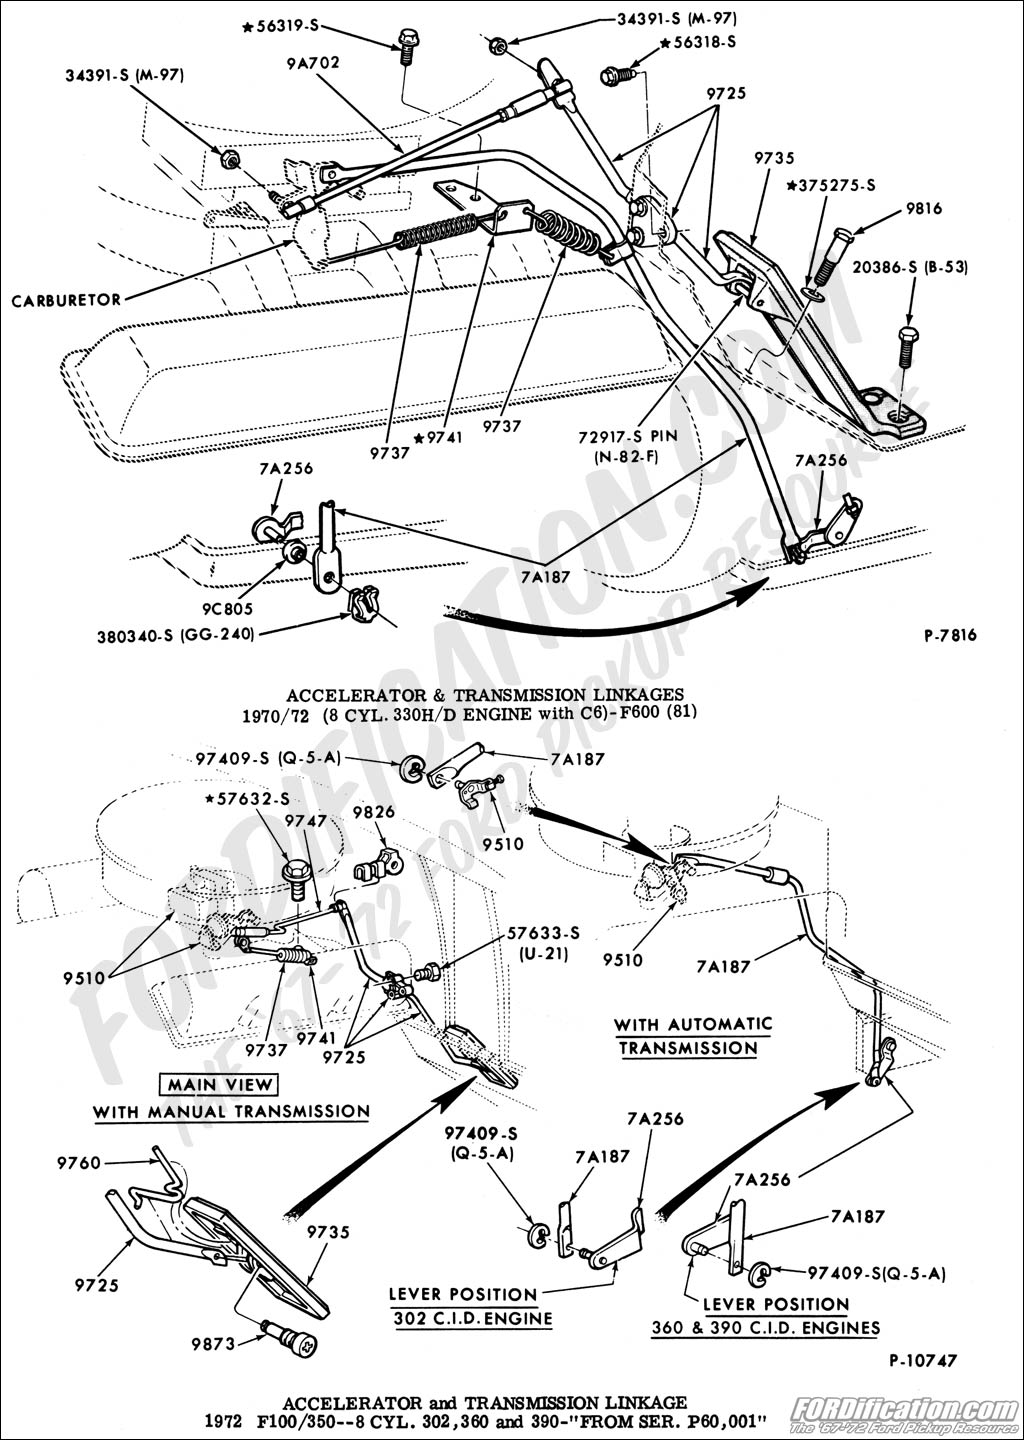 68 Ford Throttle Linkage Diagram Explore Wiring On The Net Further Tecumseh Engines Carburetor Briggs And Kick Down For 1972 F100 360 2 Barrel Rh Trucks Com